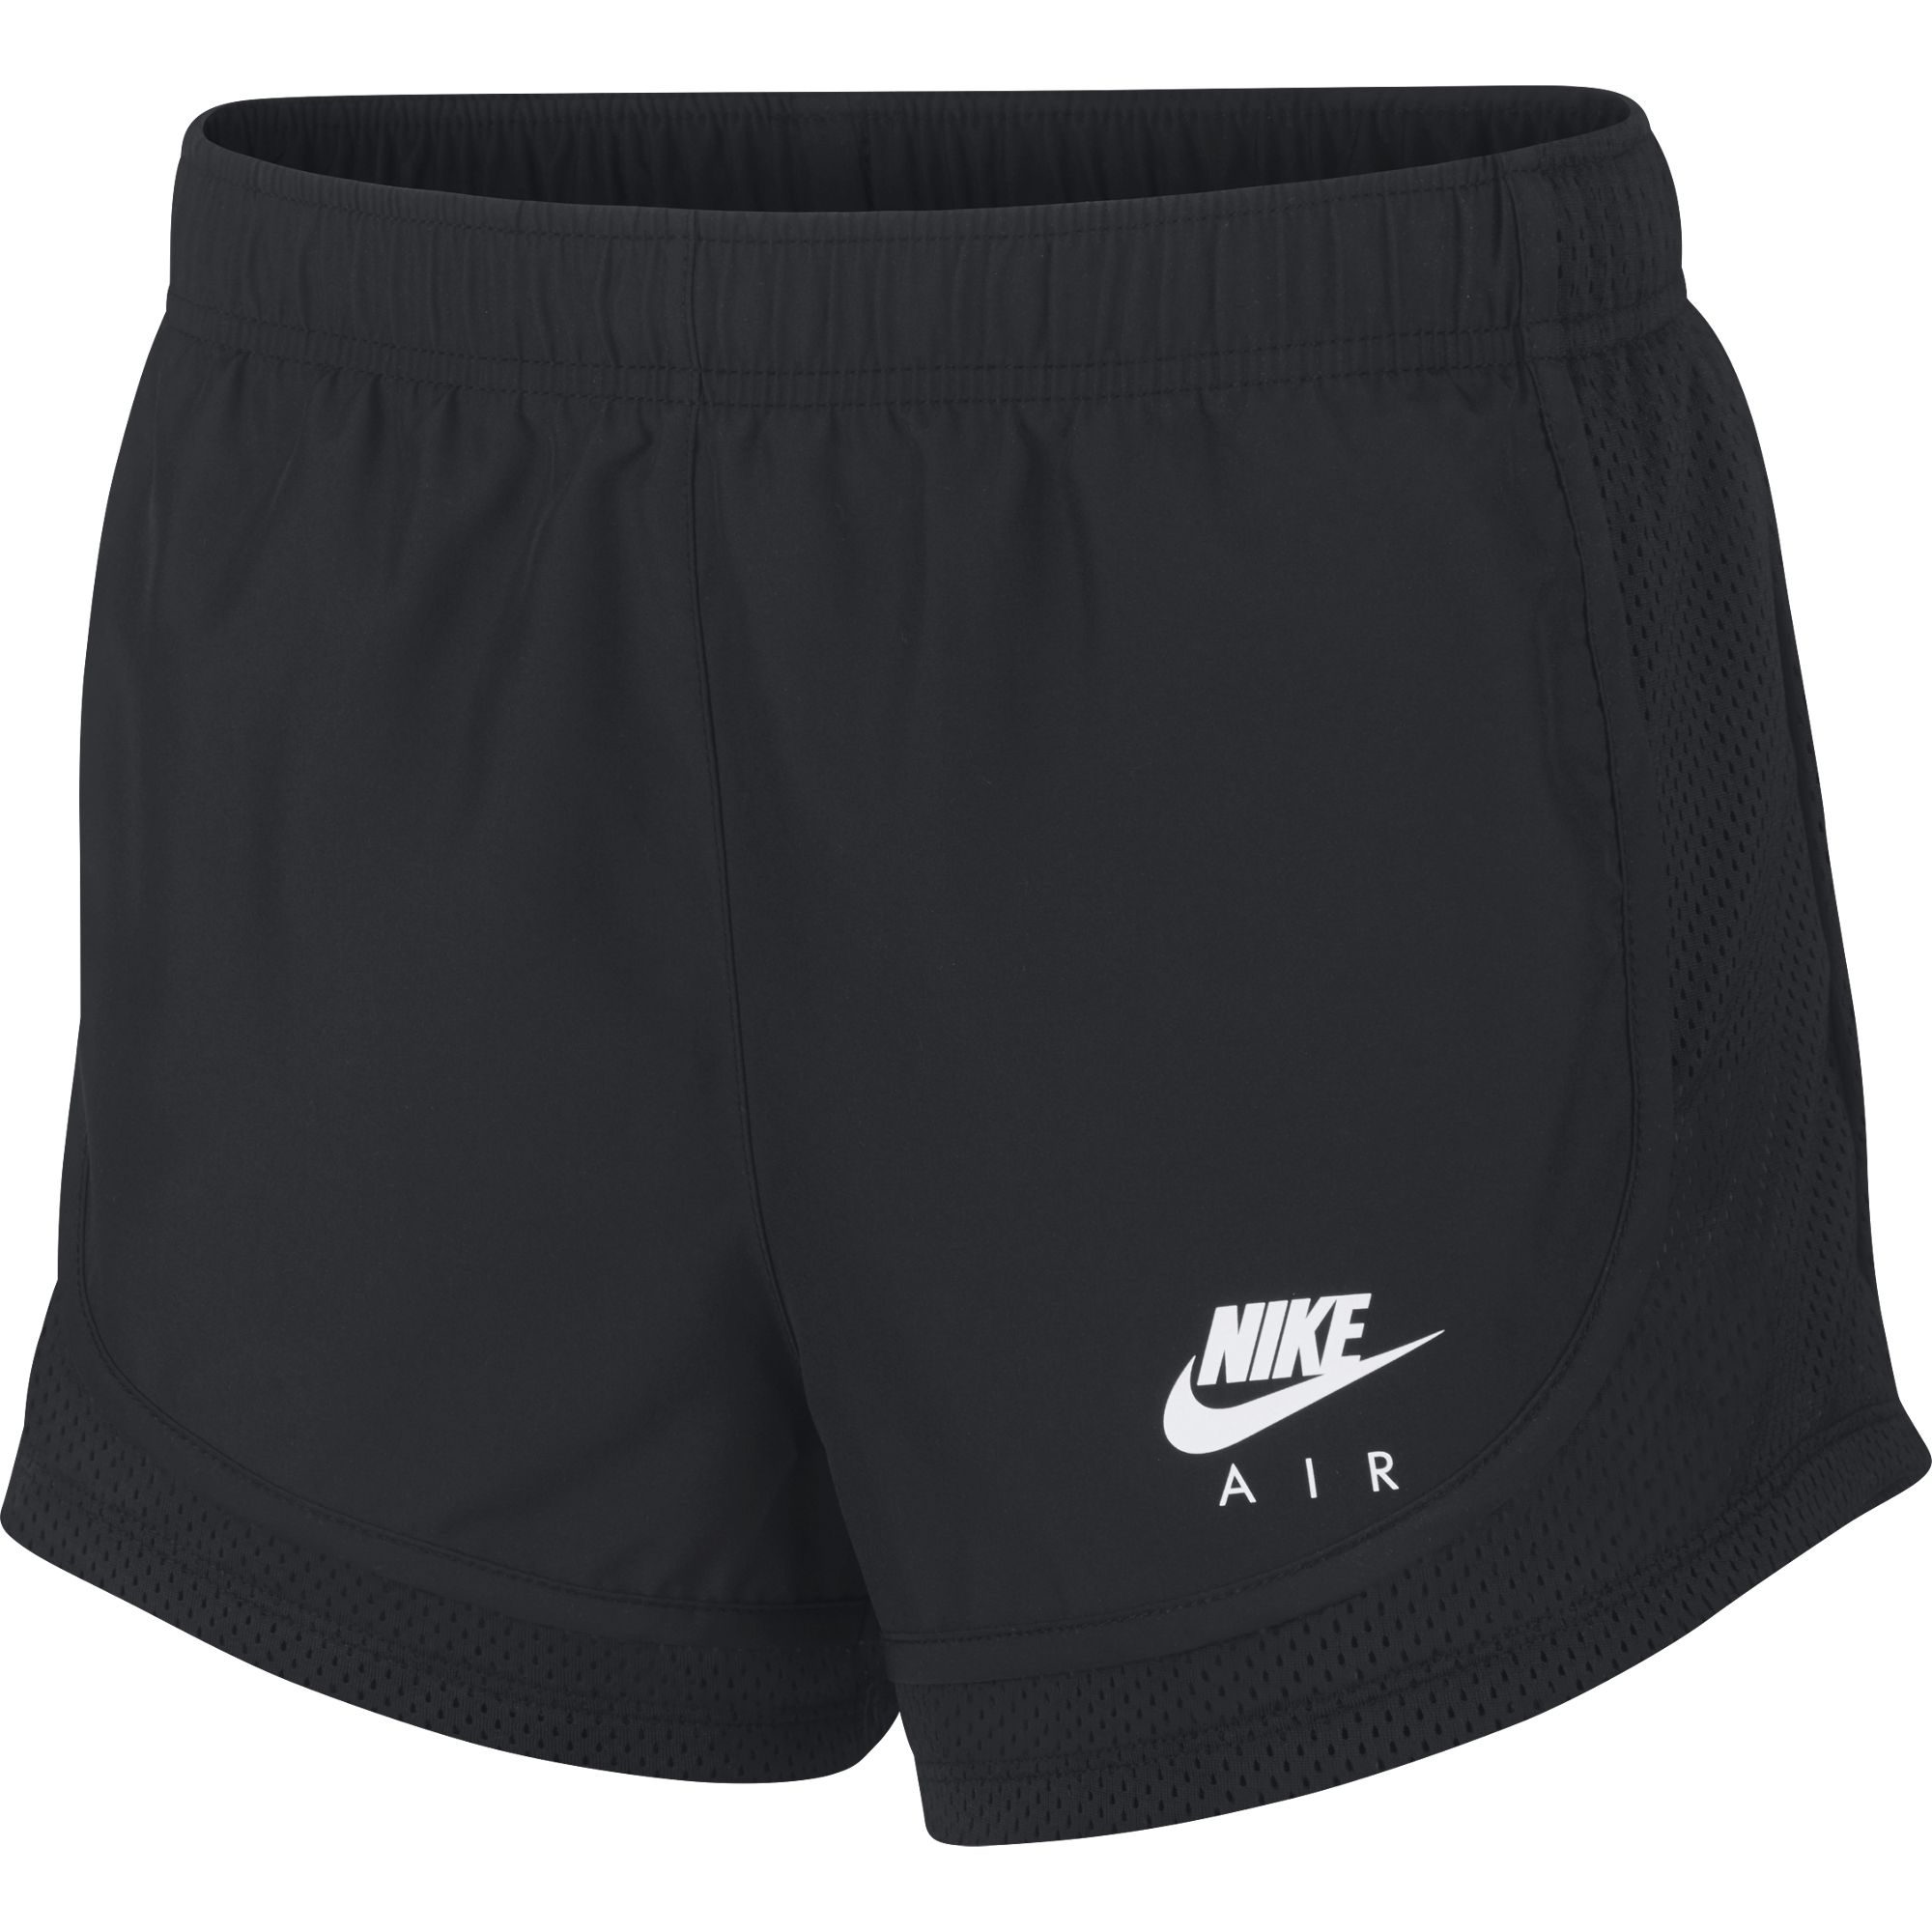 Women's Tempo Air Shorts, Black, swatch